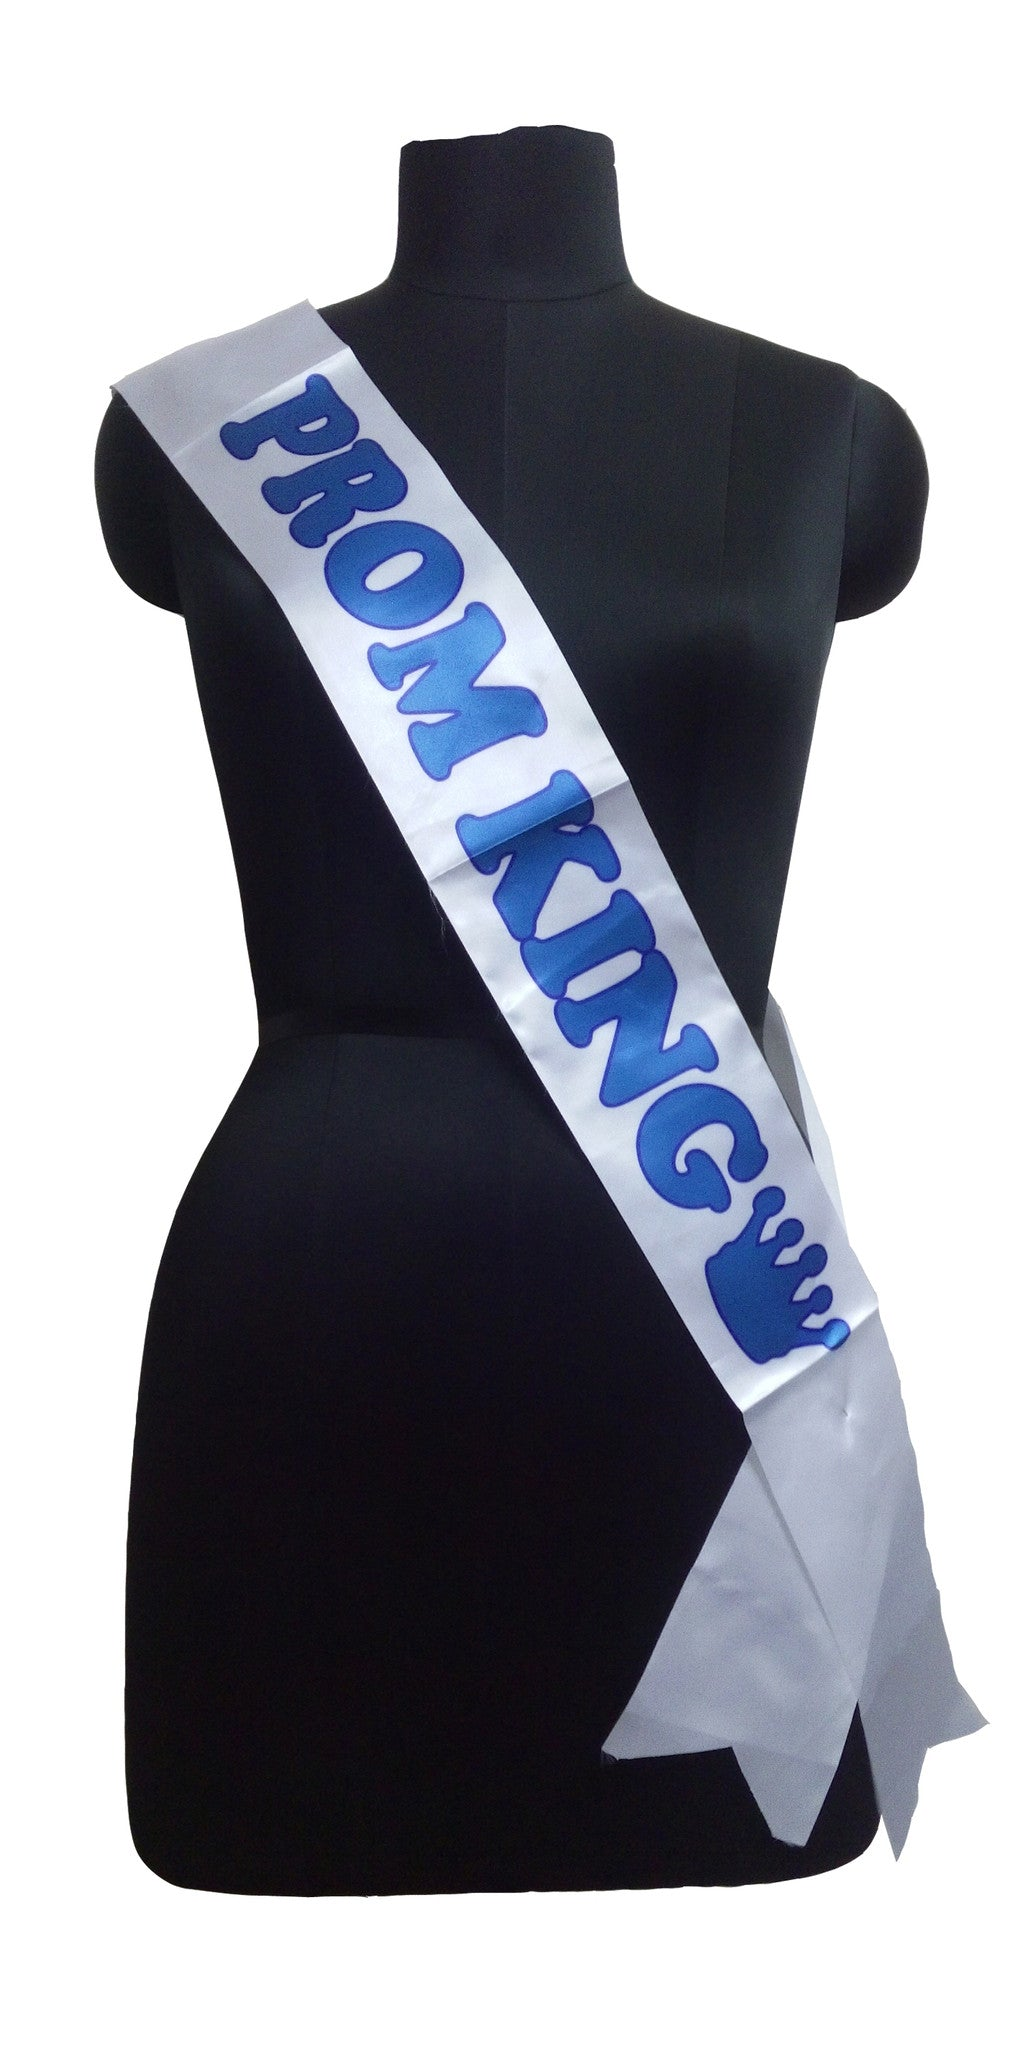 Sash - Prom Night - Prom King Sash